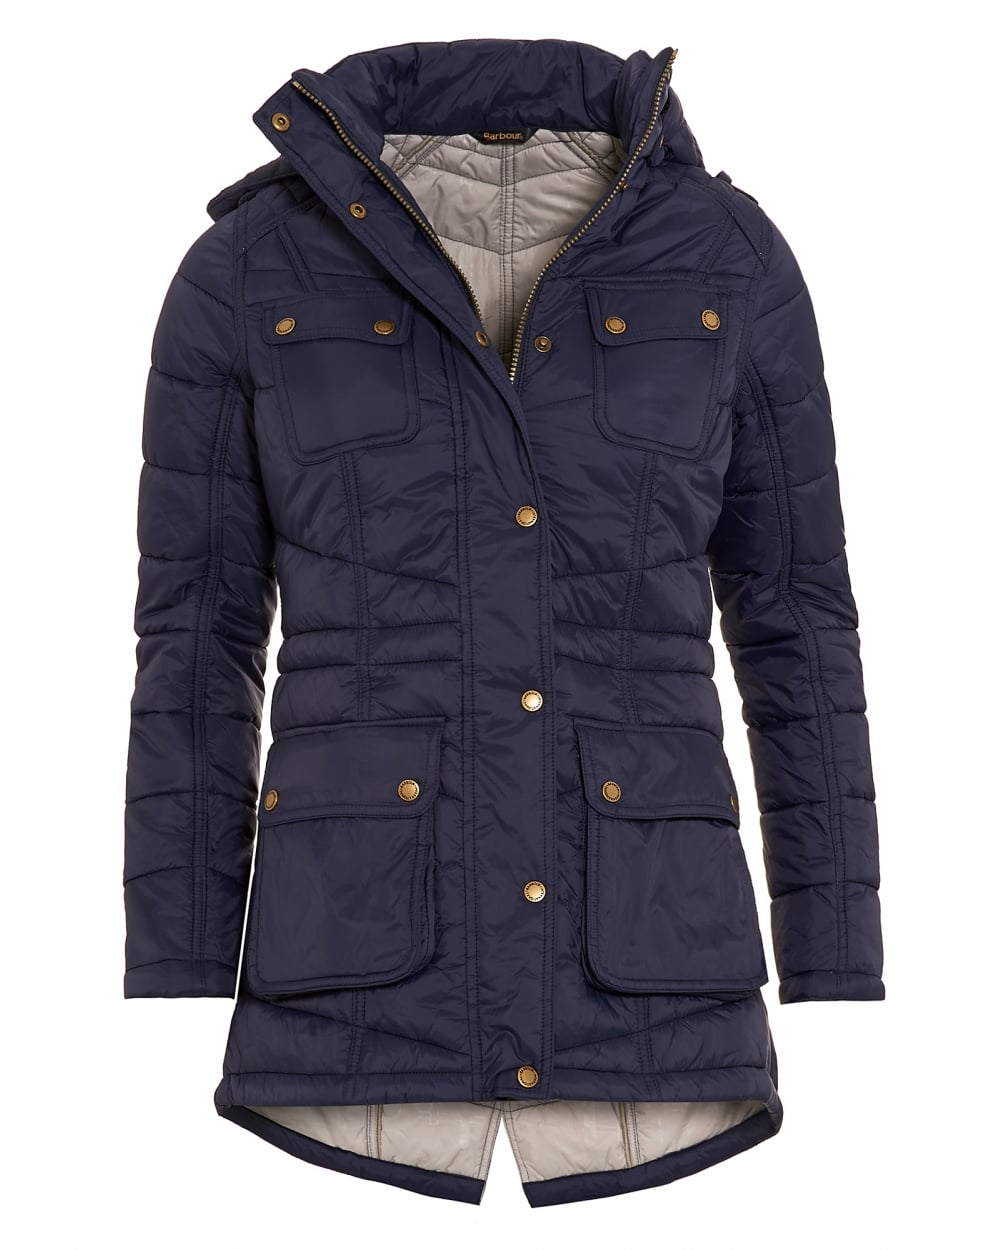 Find great deals on eBay for navy blue quilted jacket. Shop with confidence.